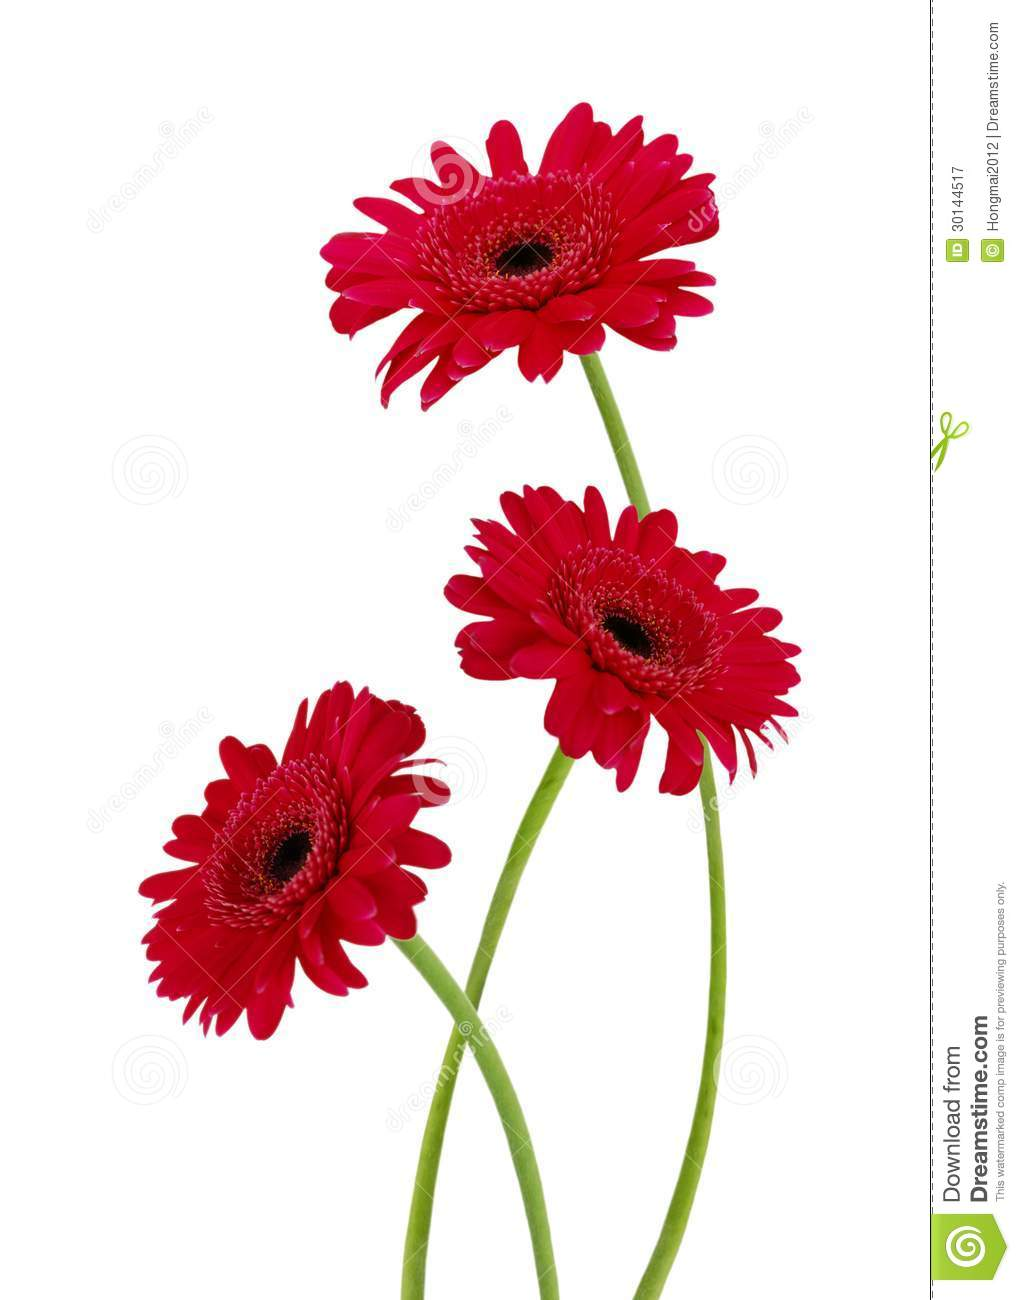 Three gerbera daisy flowers stock image image of studio download three gerbera daisy flowers stock image image of studio background 30144517 izmirmasajfo